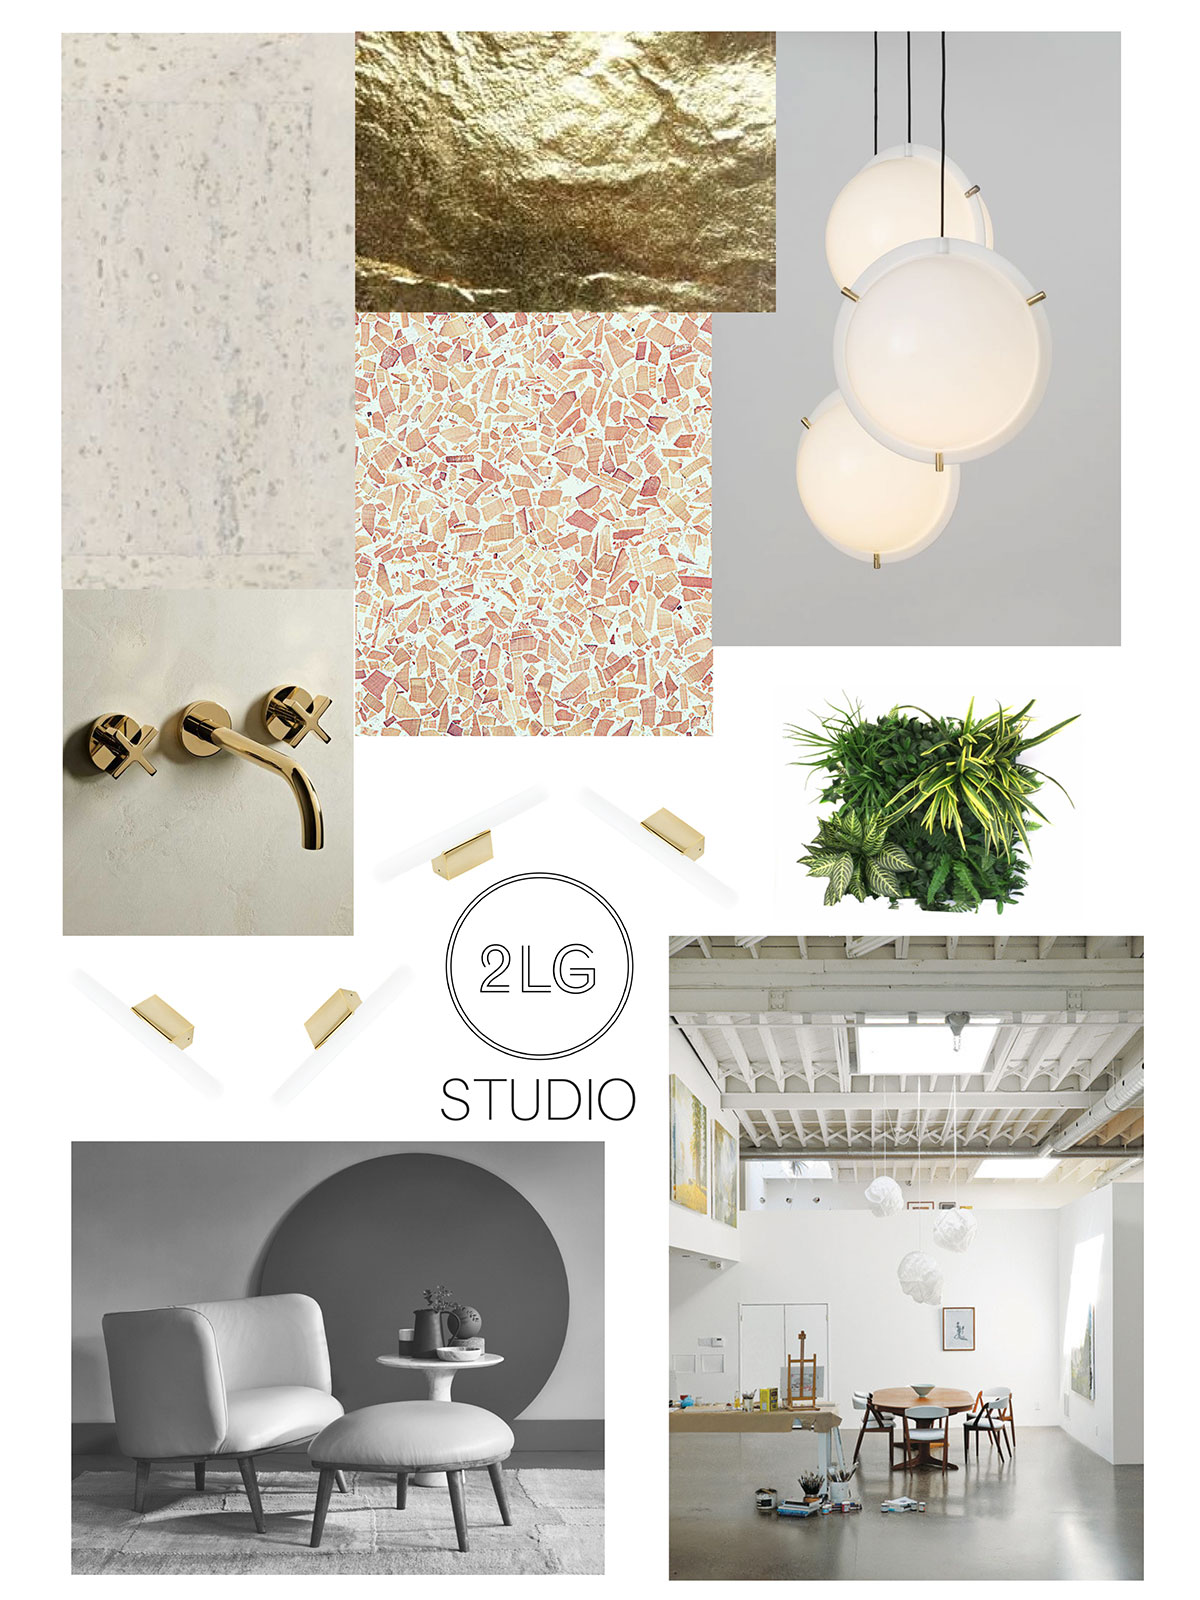 2LG Studio » The Year of the Kitchen